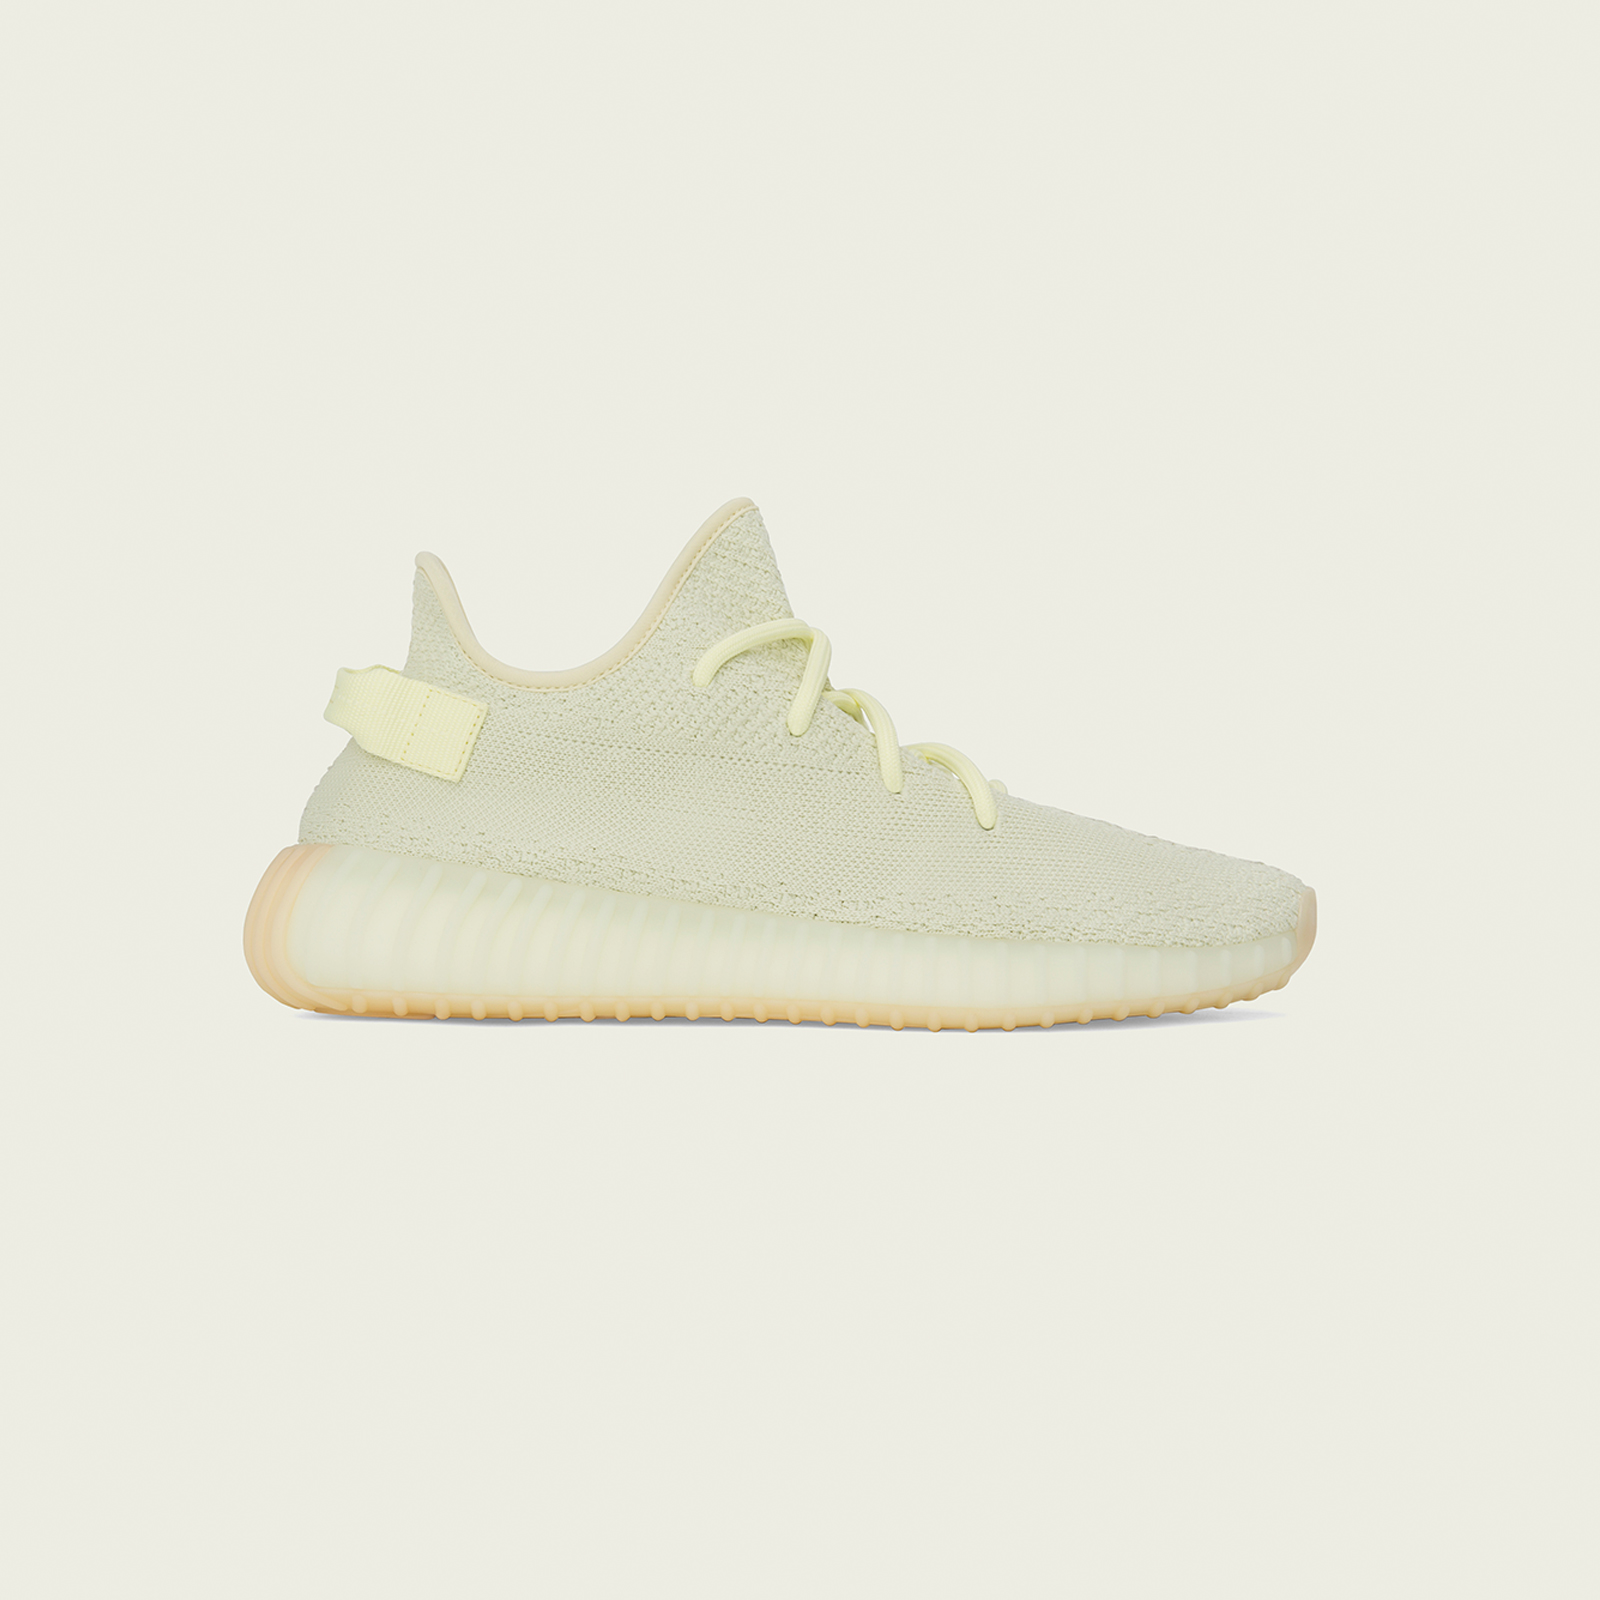 67ab9d064 adidas Yeezy Boost 350 - F36980 - Sneakersnstuff